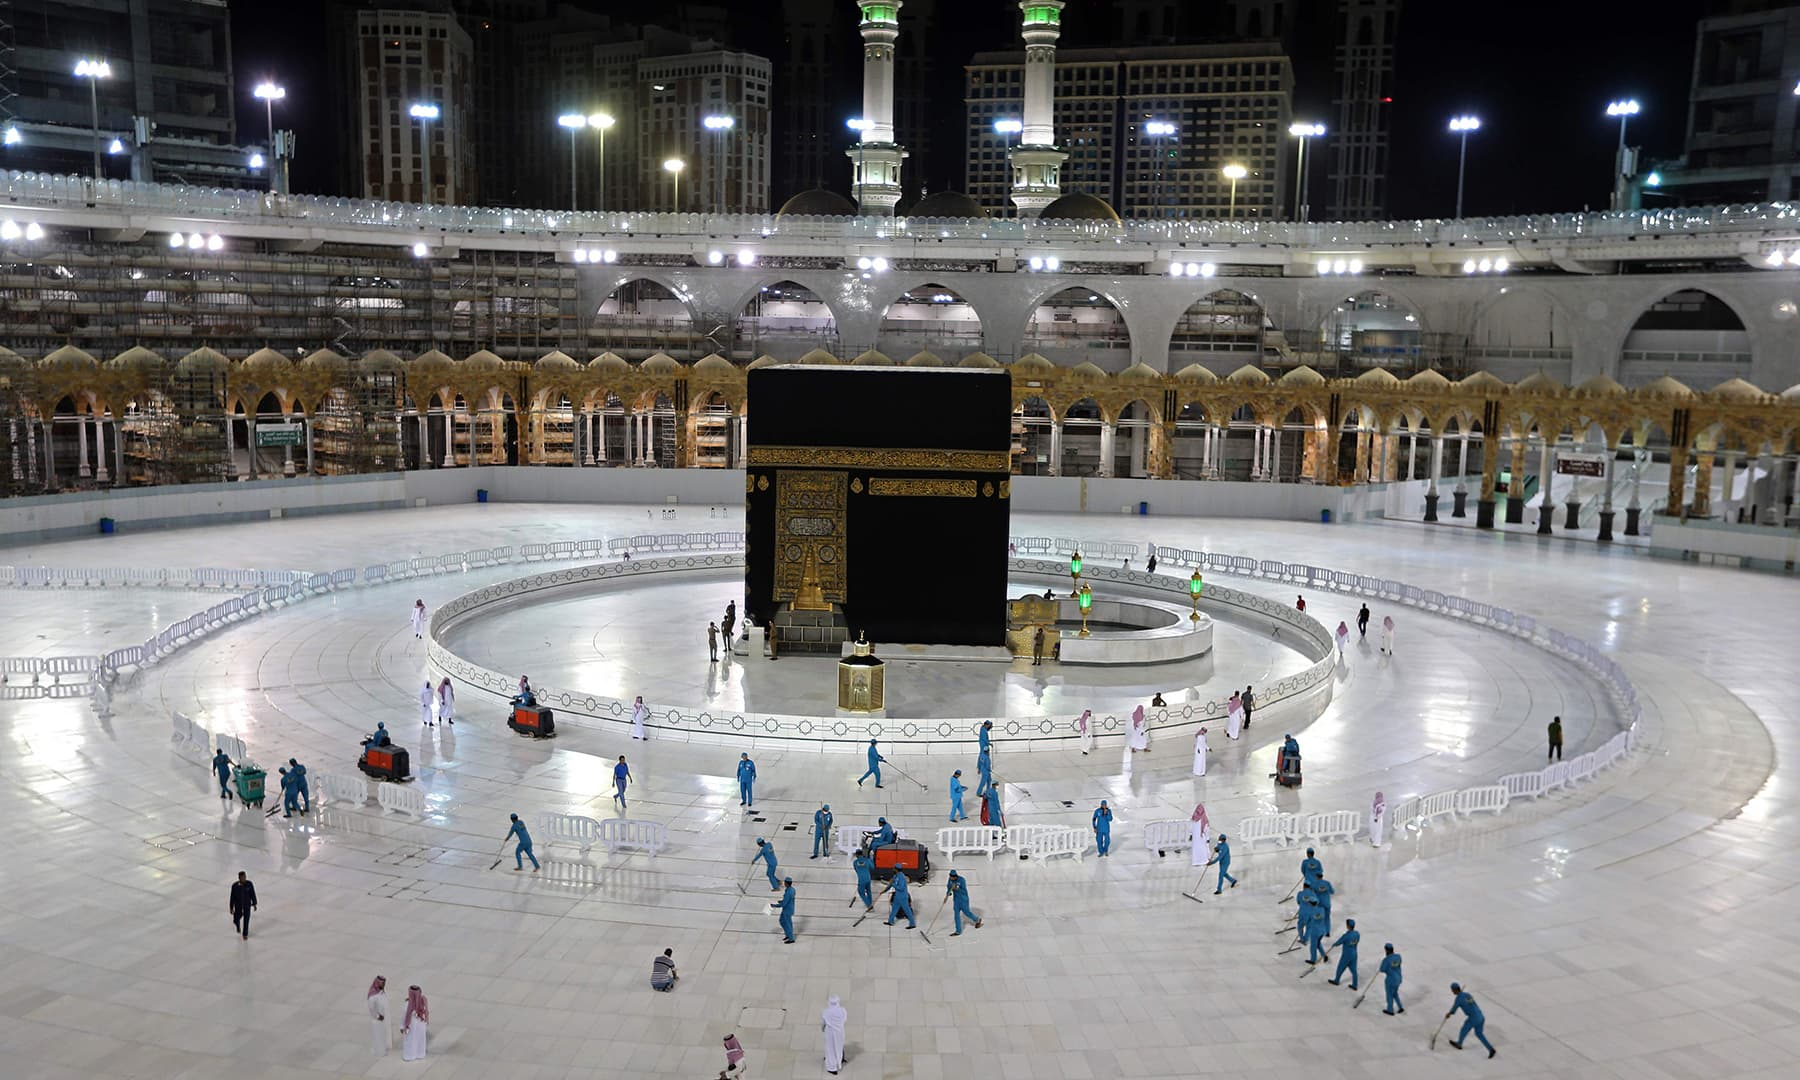 Sanitation workers disinfect the area around the Kaaba in Makkah's Grand Mosque, on the first day of Ramazan. — AFP